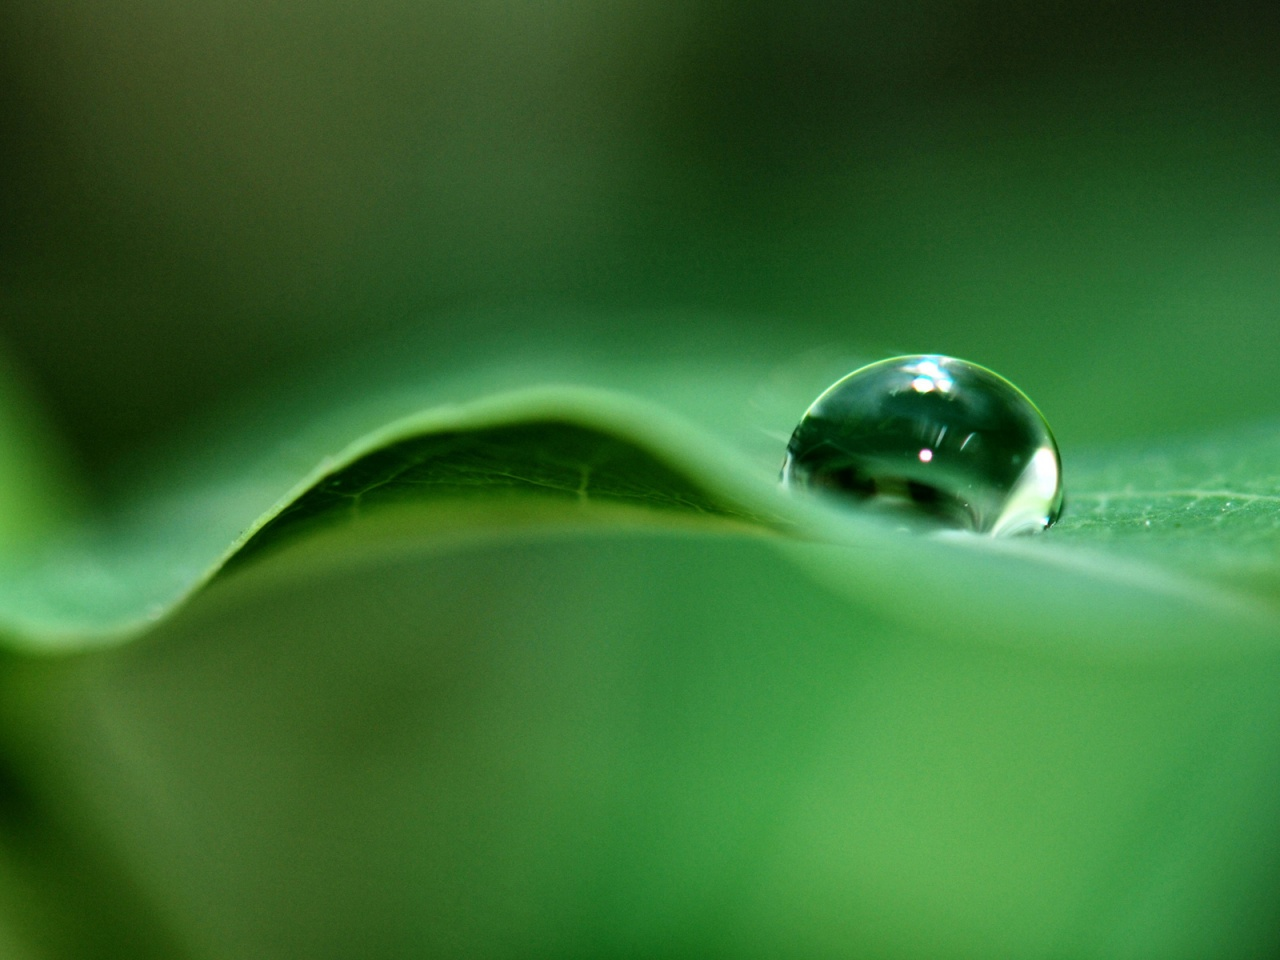 Green Dew - scenery wallpaper. 1024x768 1152x864 1280x1024 1600x1200 ...